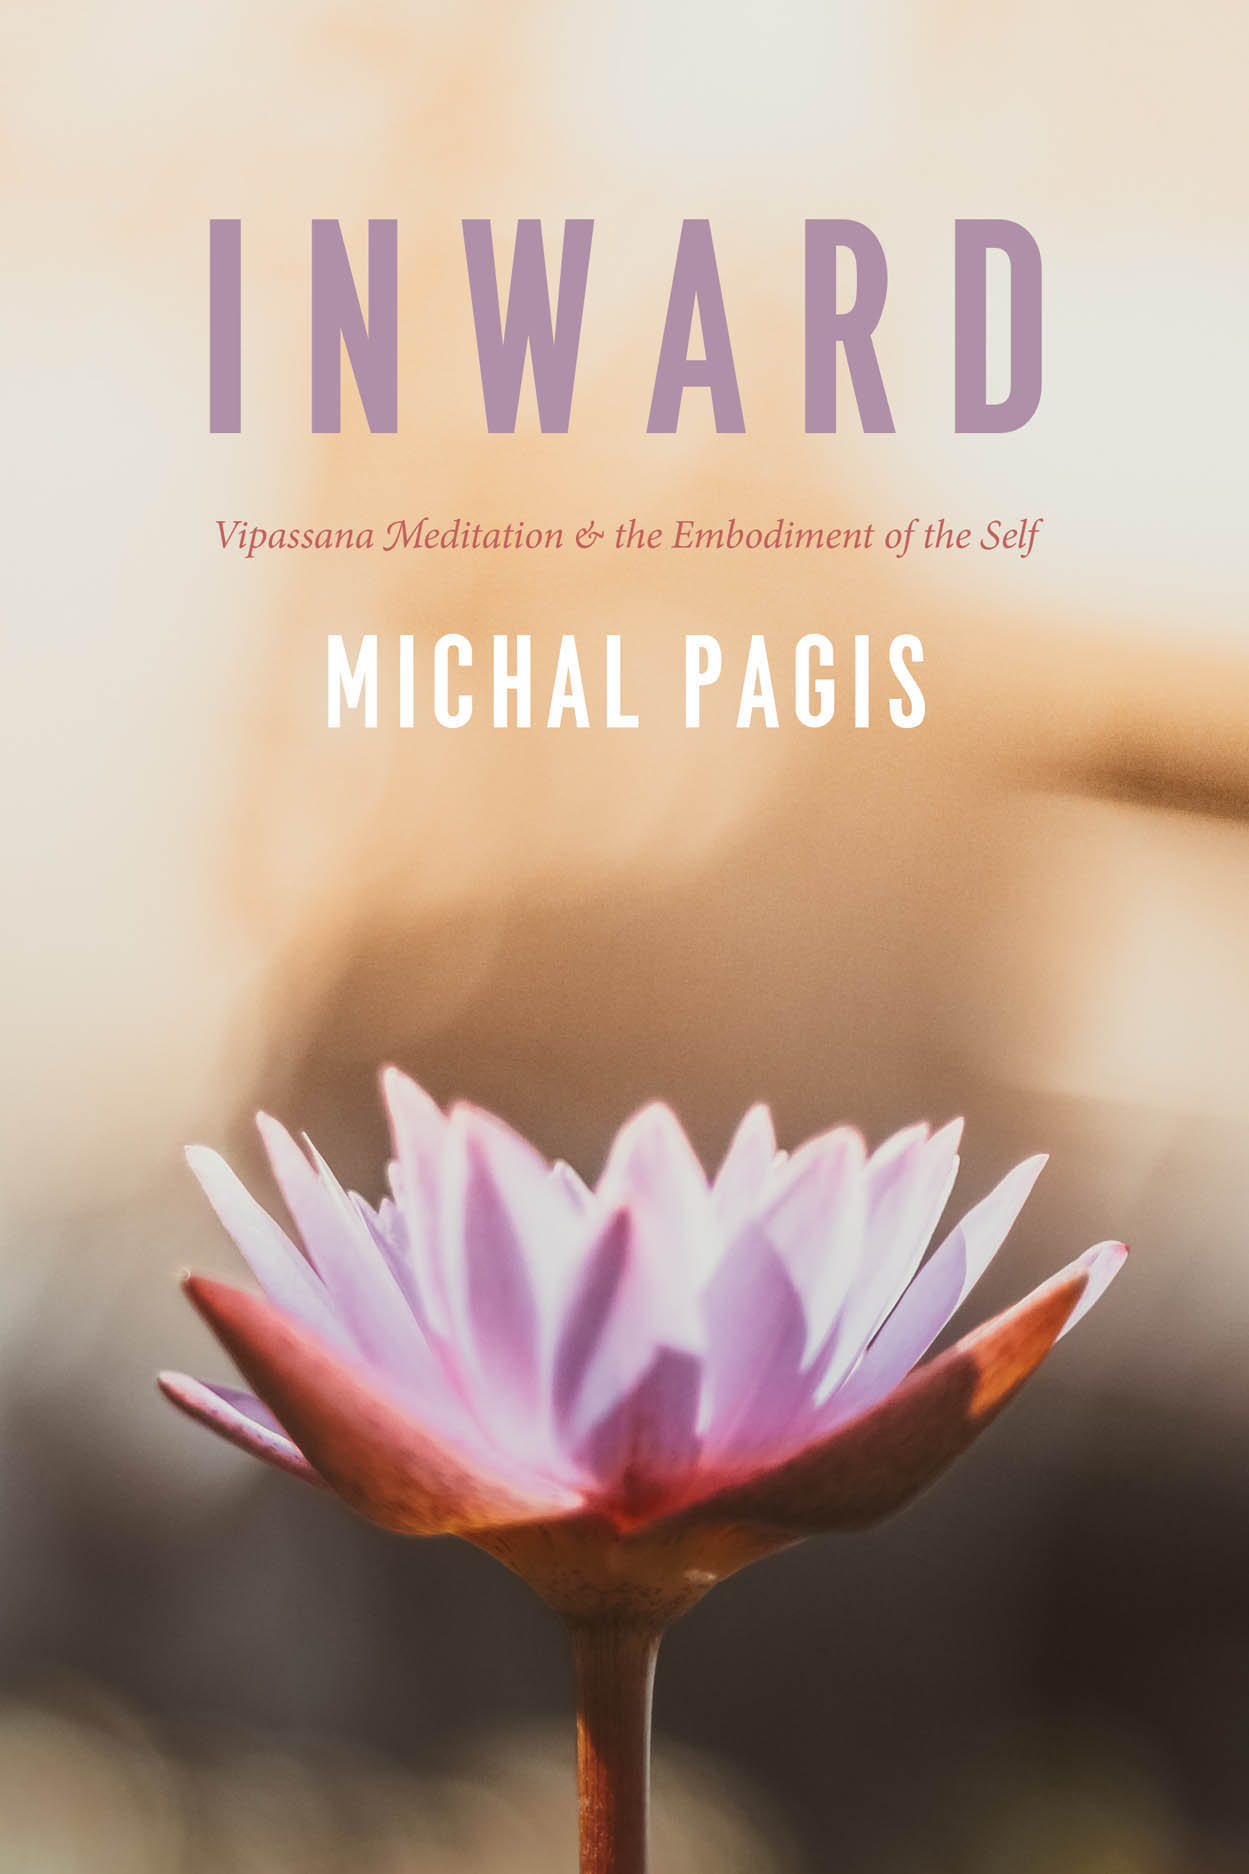 Inward: Vipassana Meditation and the Embodiment of the Self